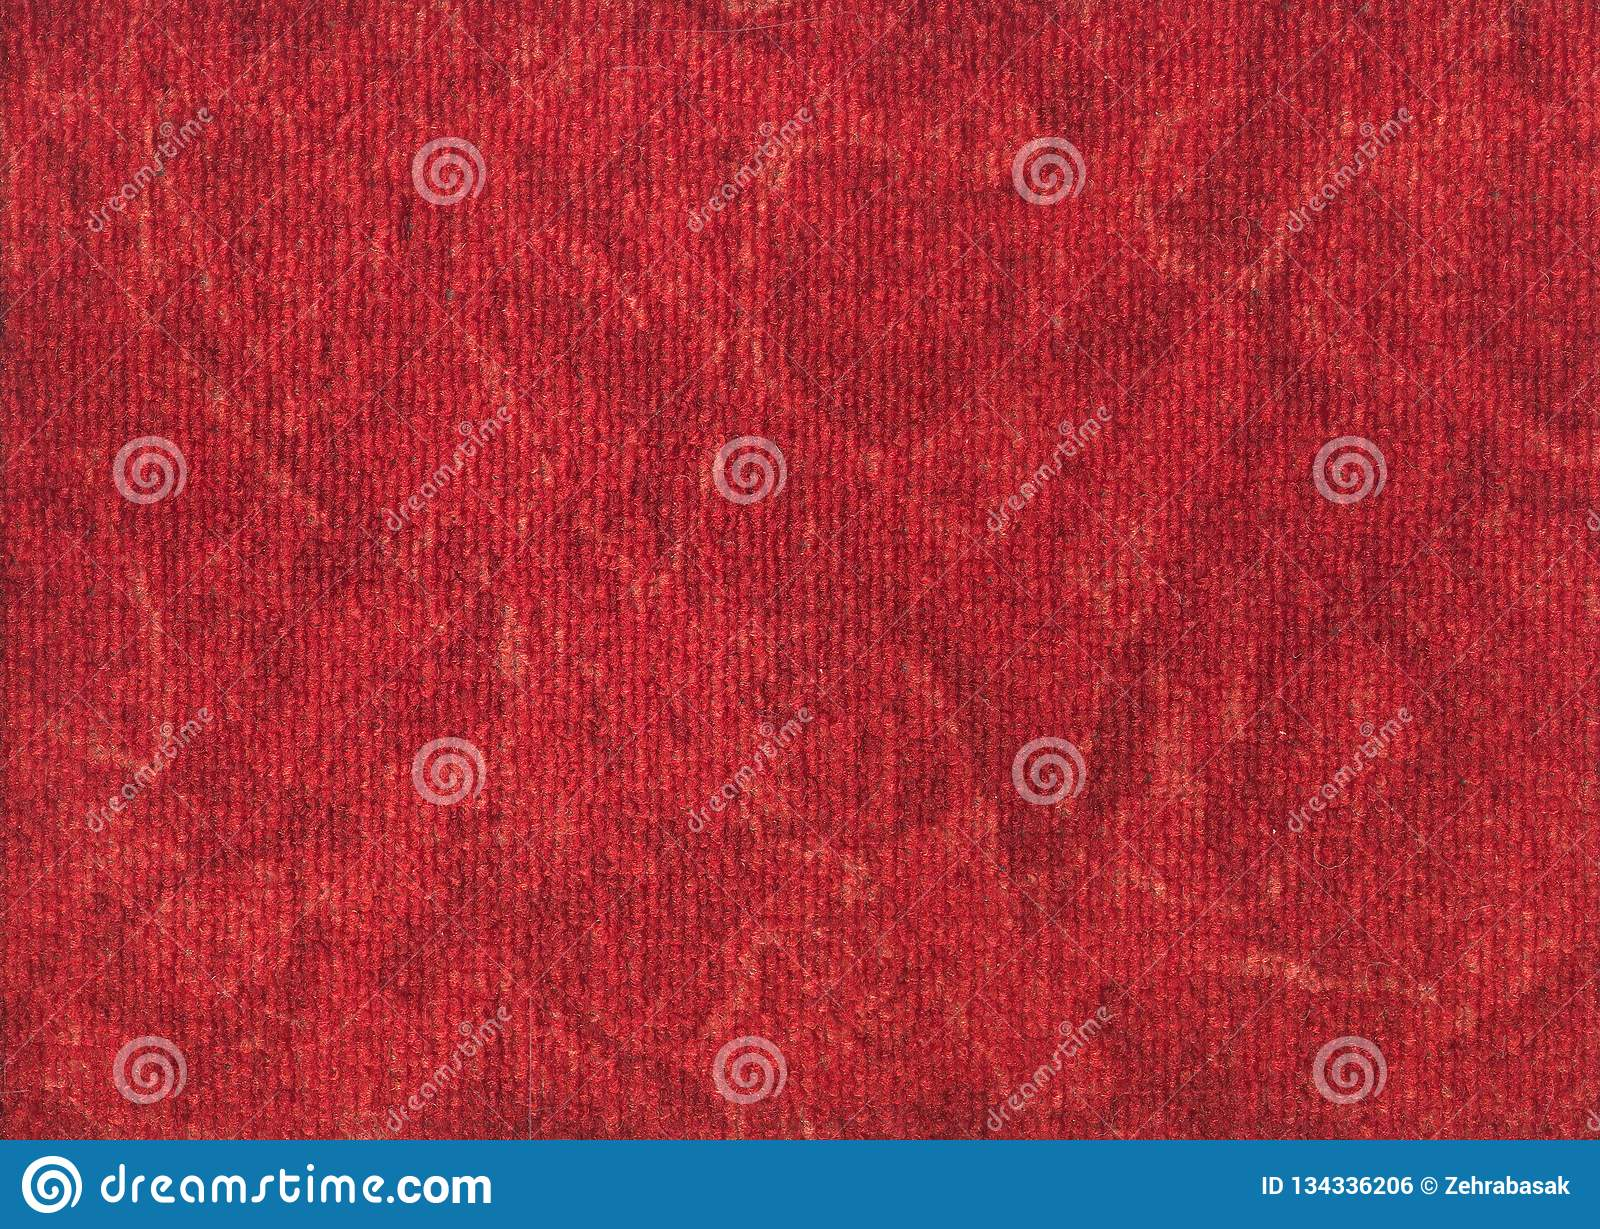 Easy To Clean Red Carpet Texture Stock Photo - Image of ...  Red Carpet Texture Pattern